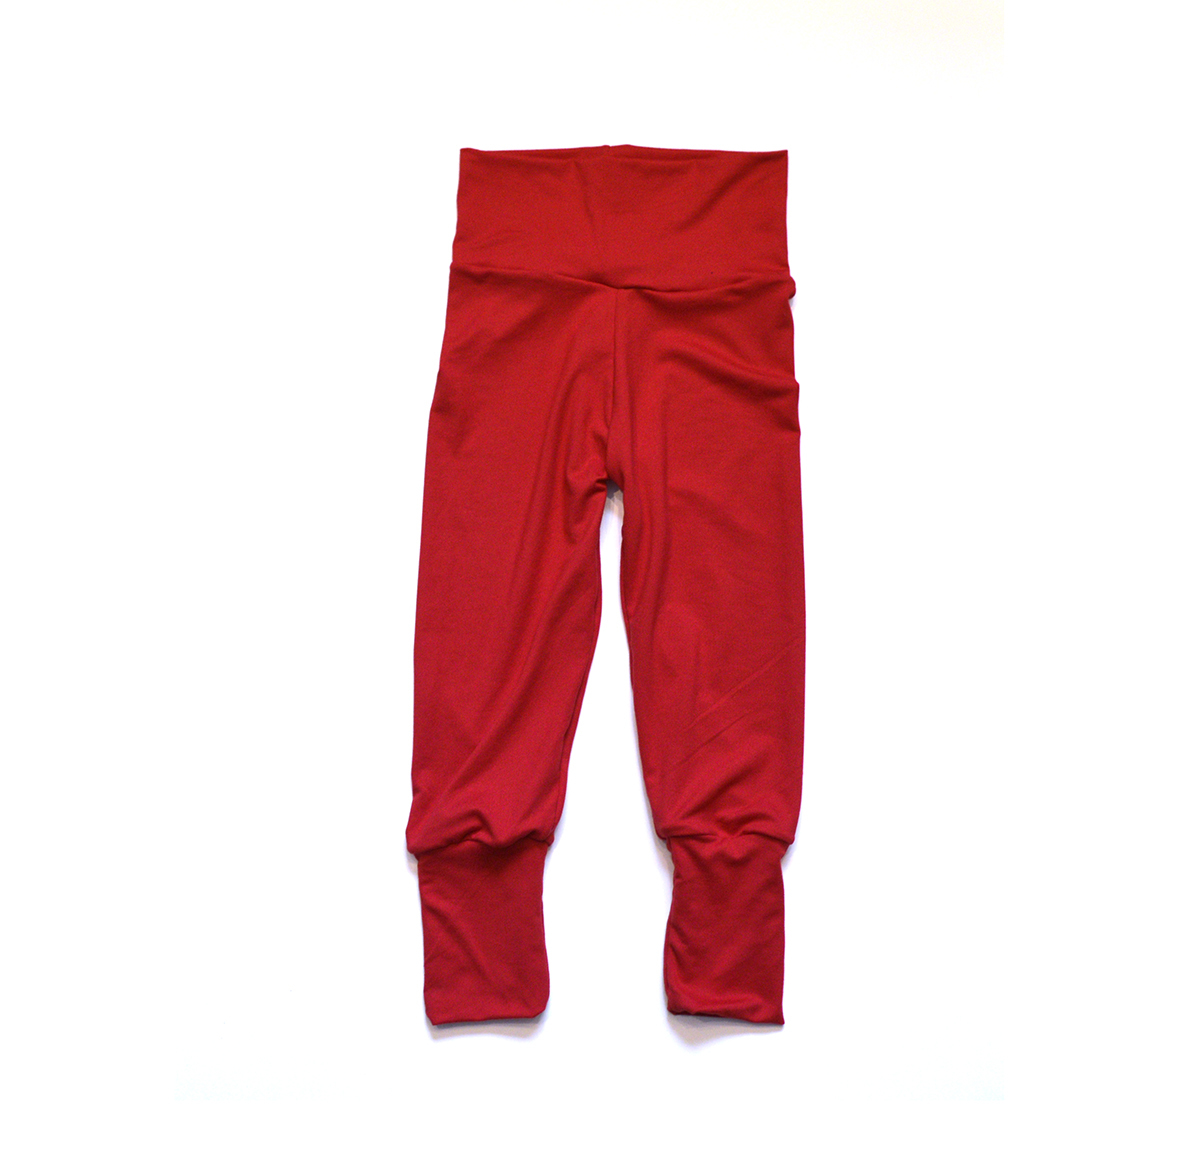 Little Sprout Pants™ Cherry Red 00537